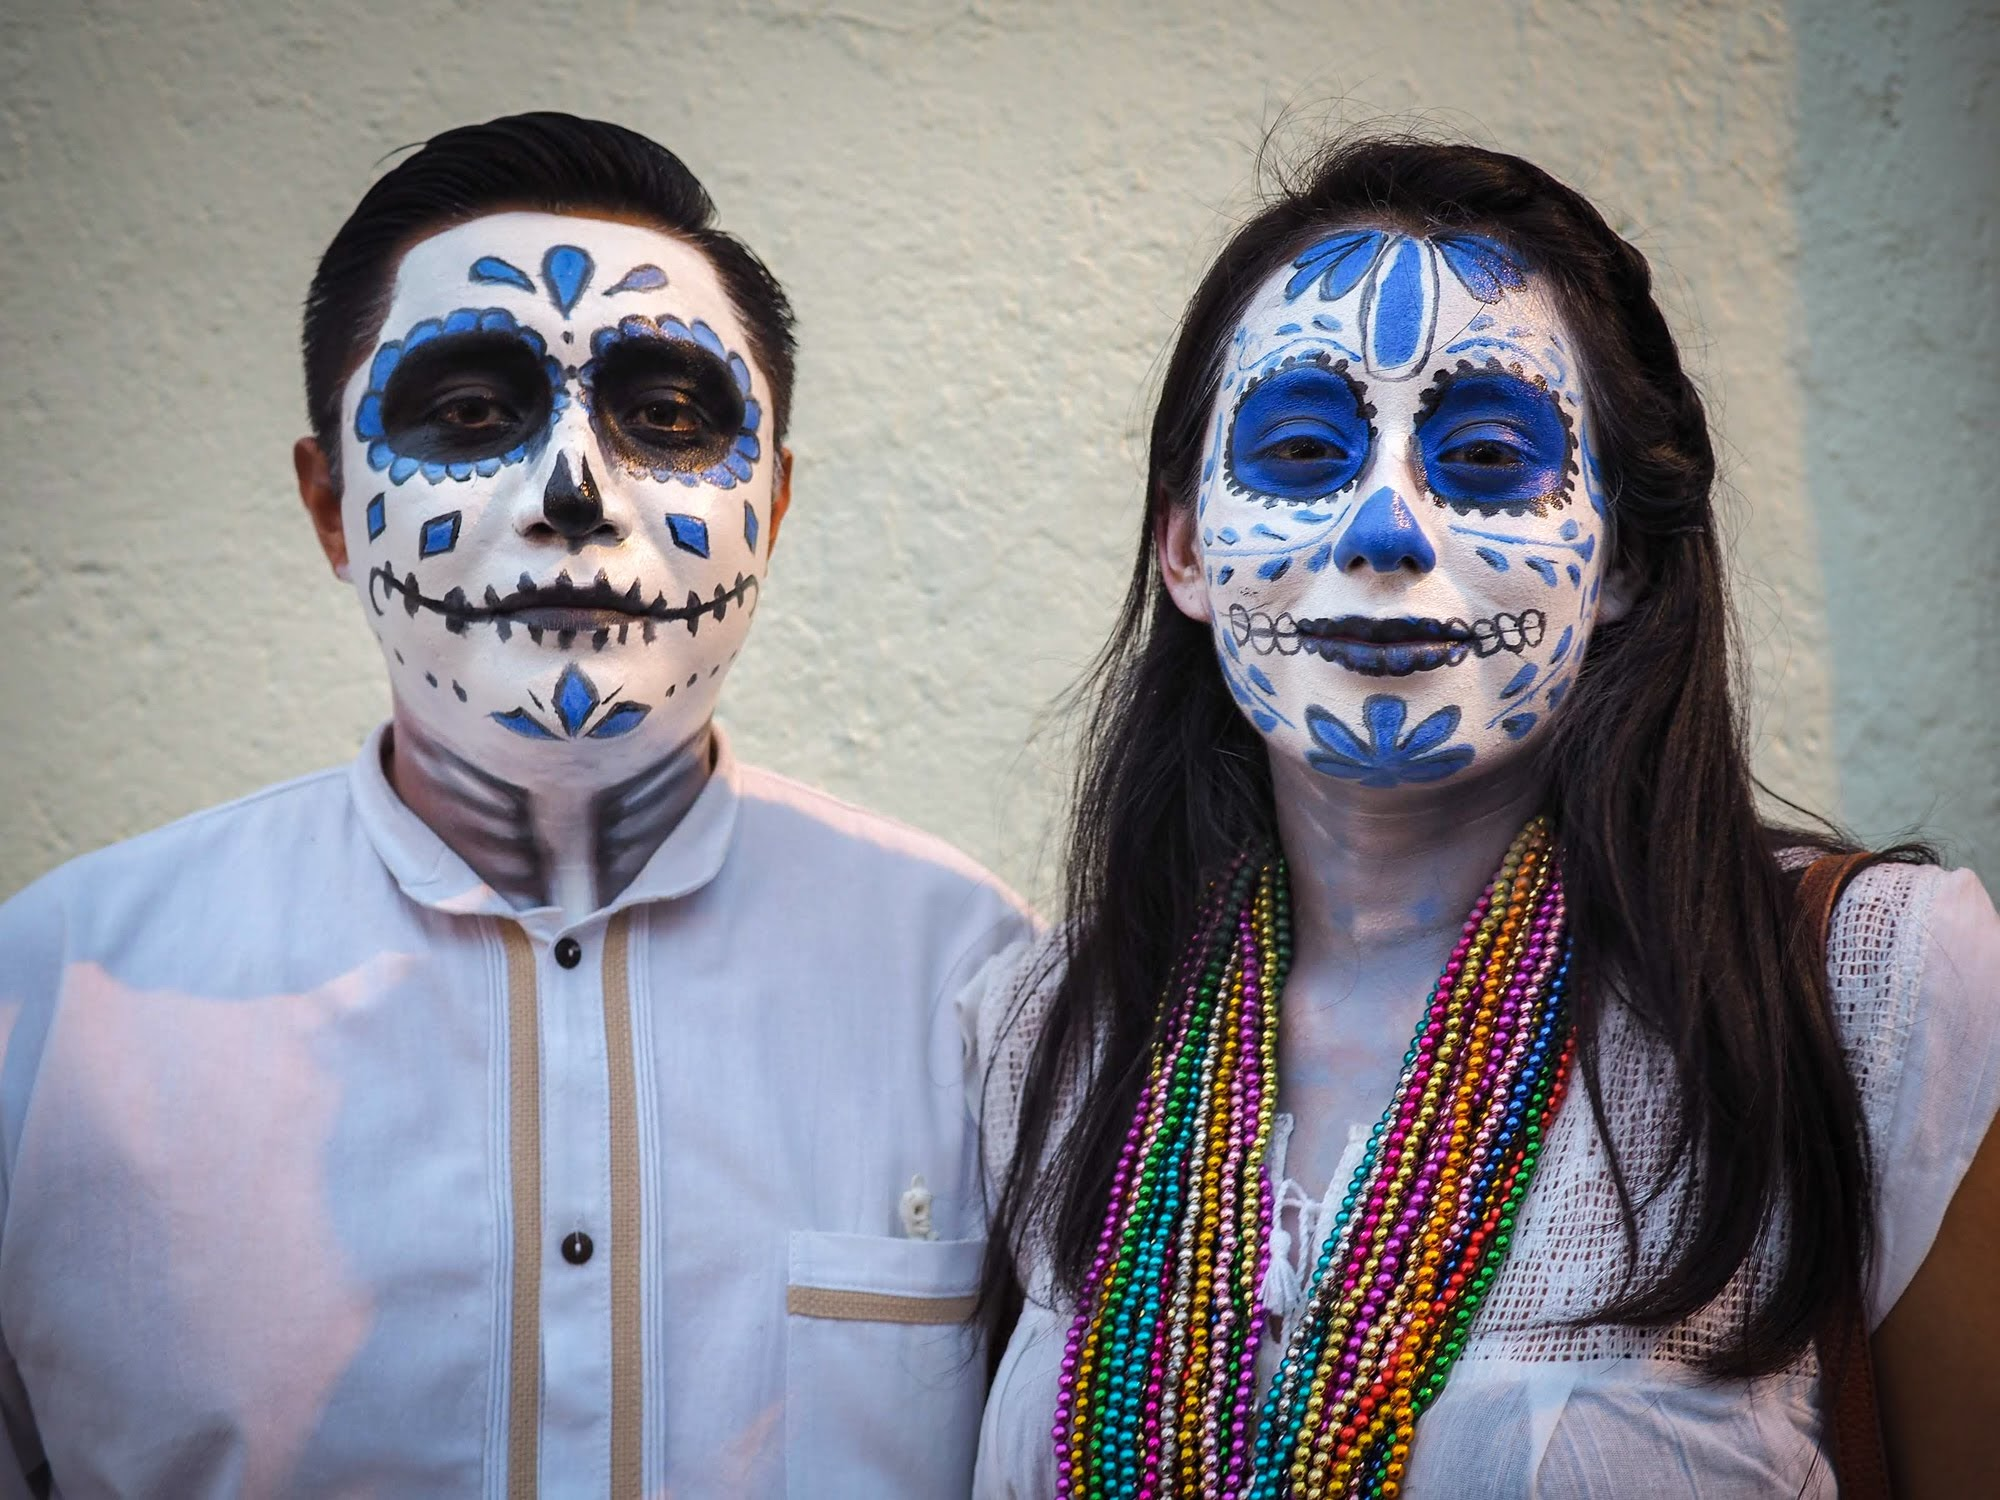 Painted faces. A common sight during Dia de Los Muertos celebration in Oaxaca.